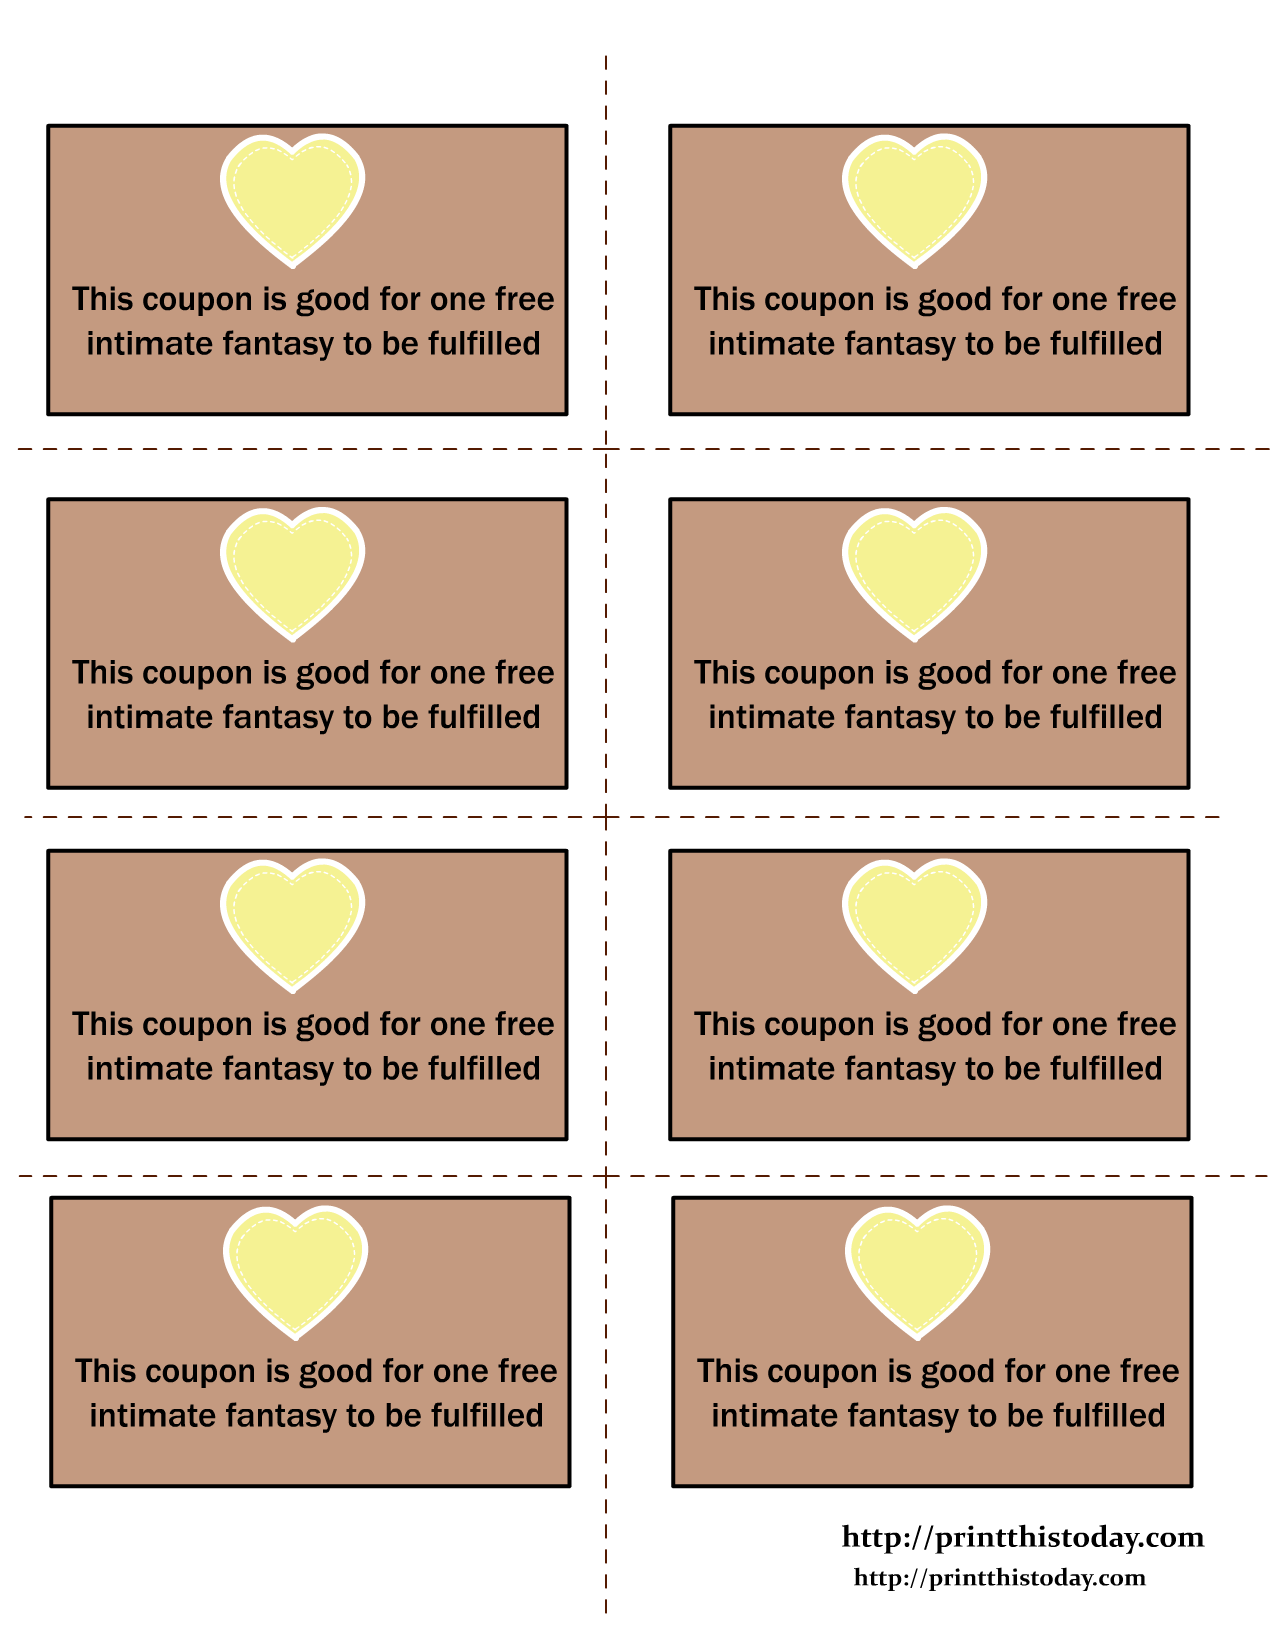 romantic coupon book template - love coupons for fulfillment of one intimate fantasy all